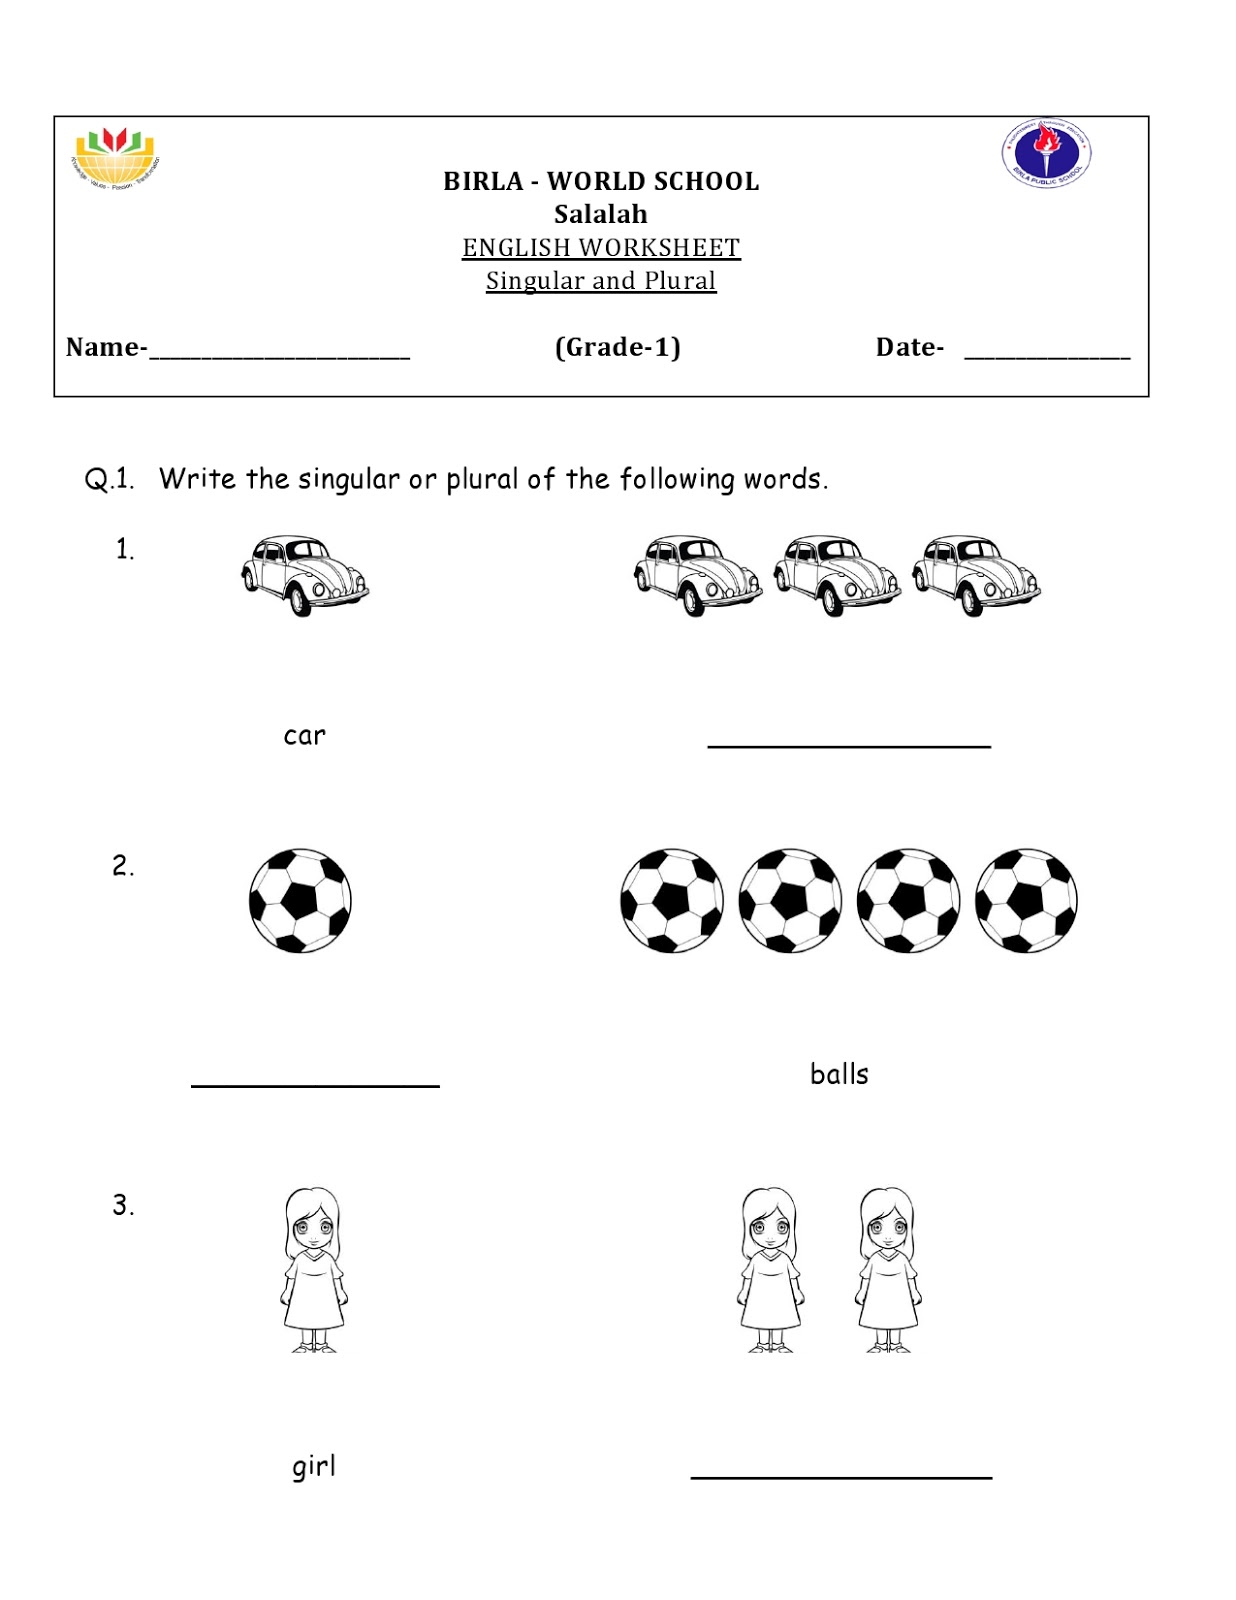 Birla World School Oman Homework For Grade 1 B And D On